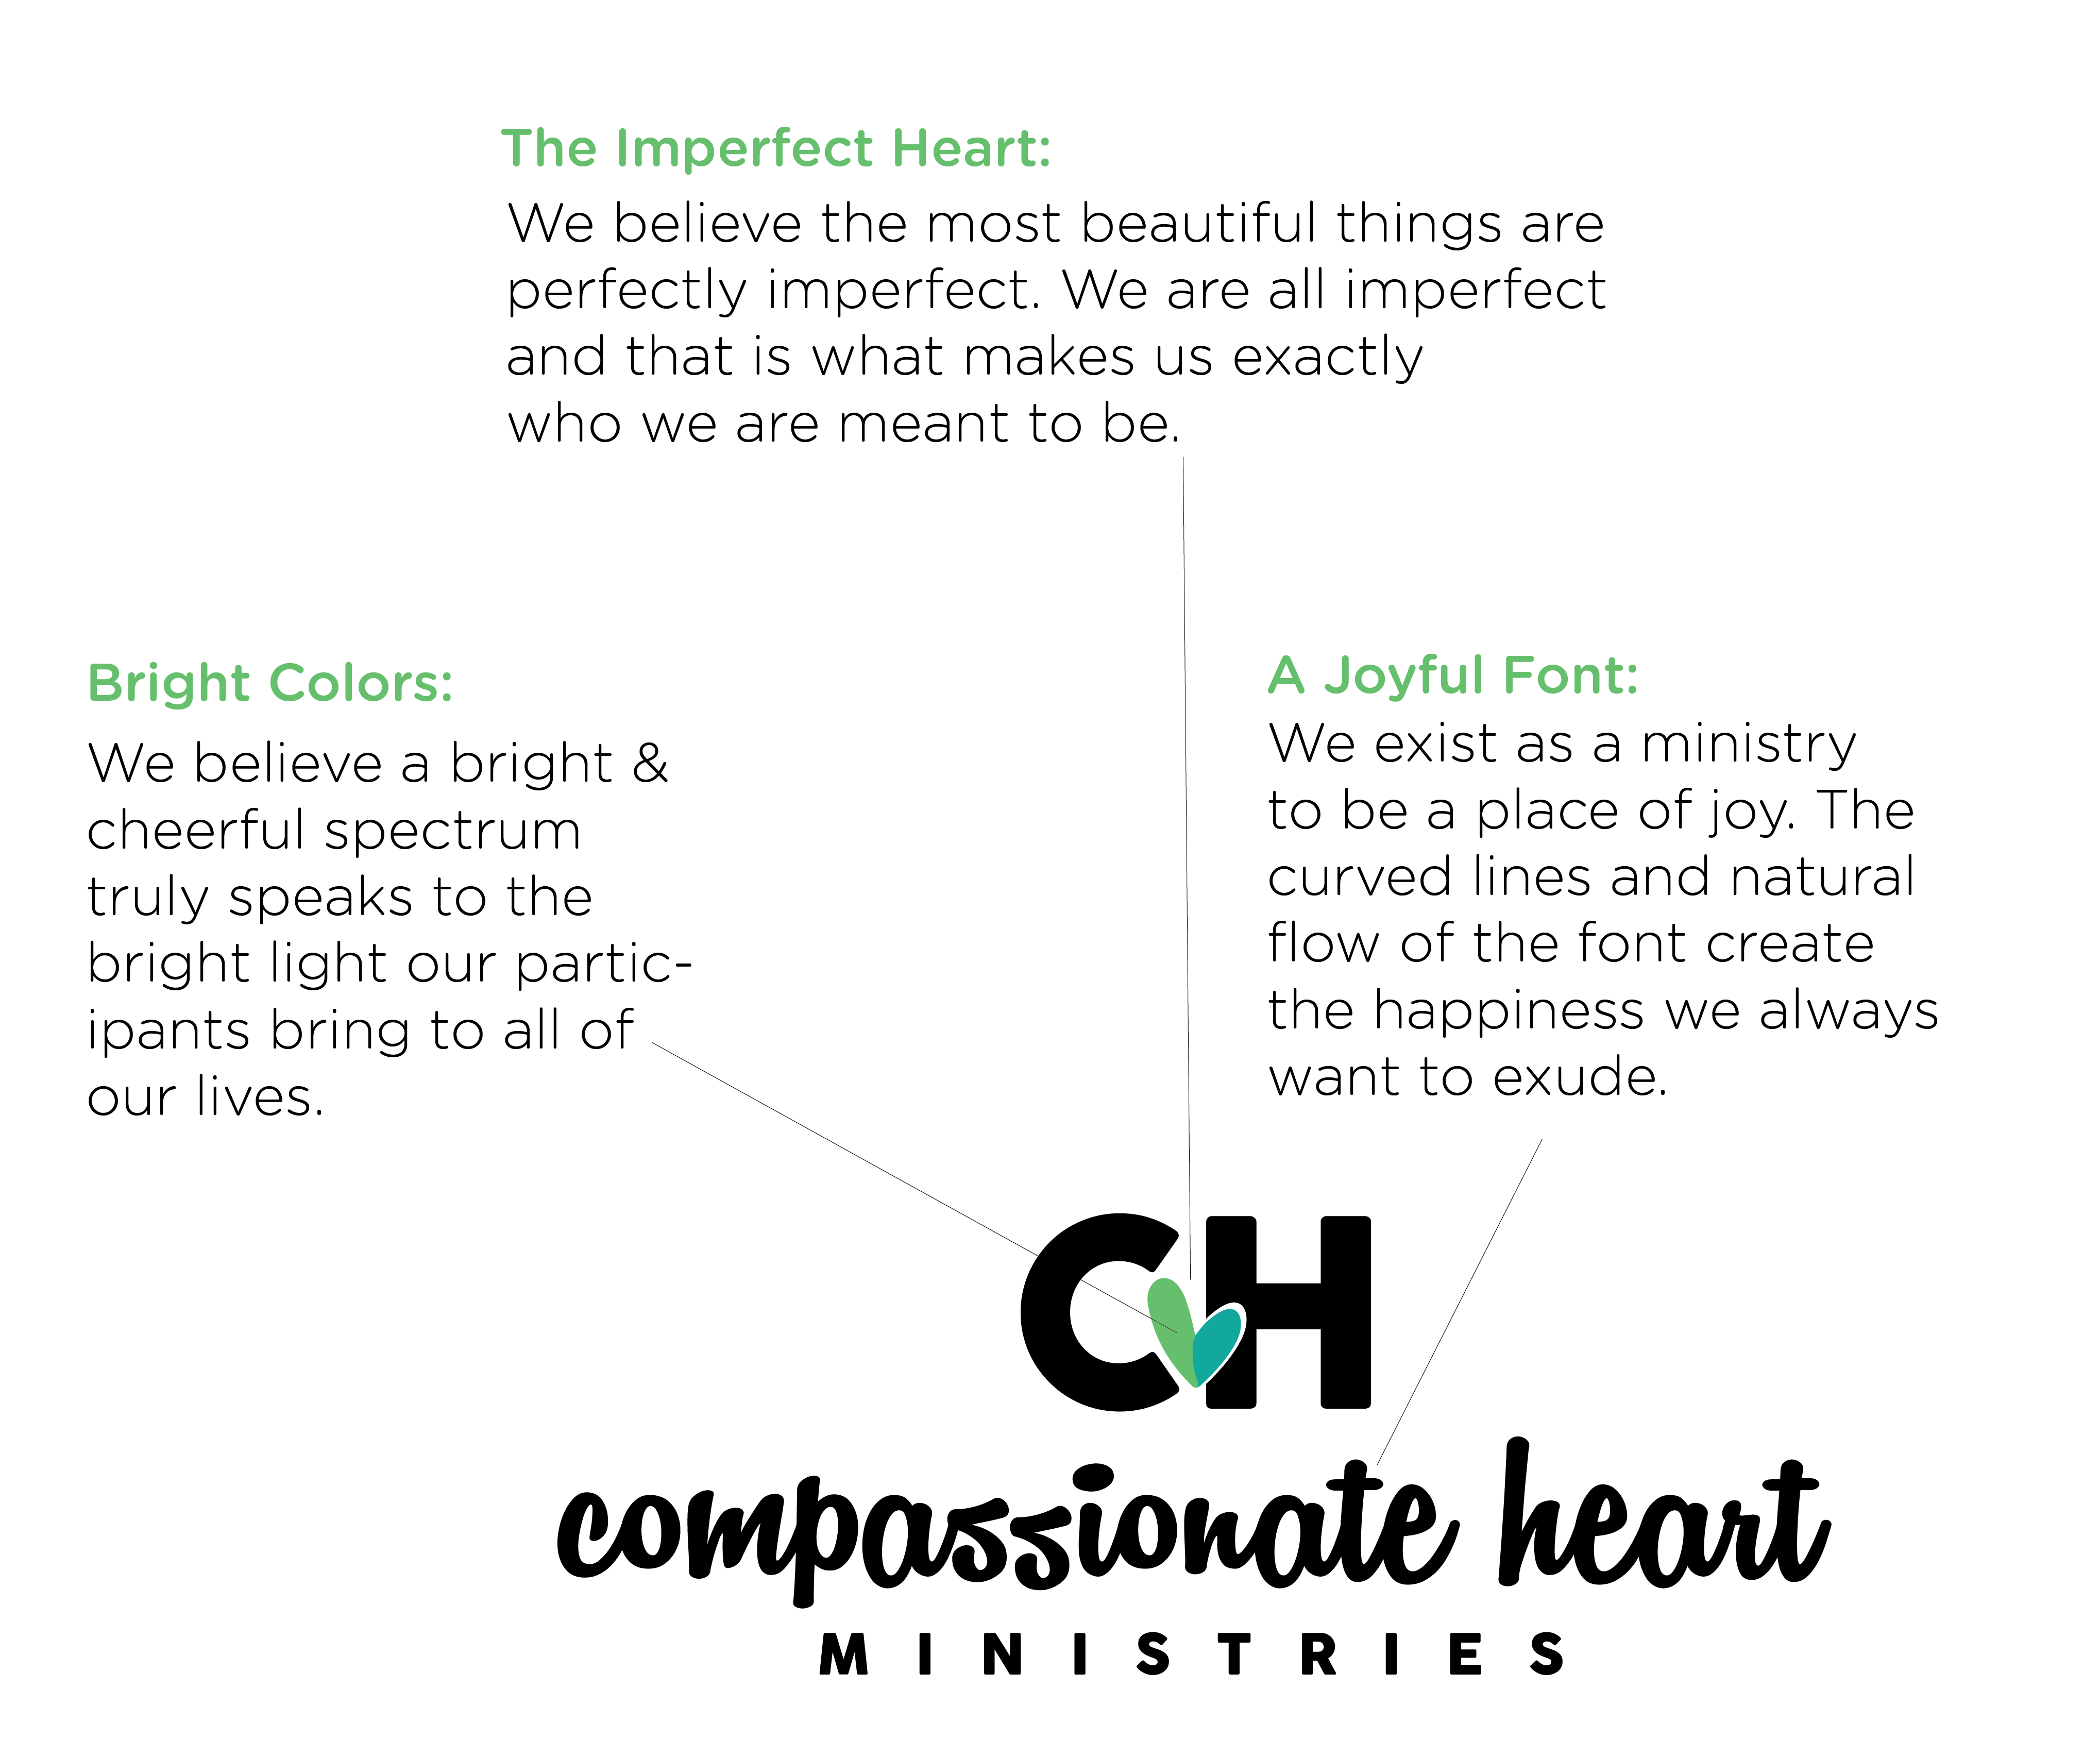 Diagram of the new Compassionate Heart Logo: The Imperfect Logo, Bright Colors, A Joyful Font